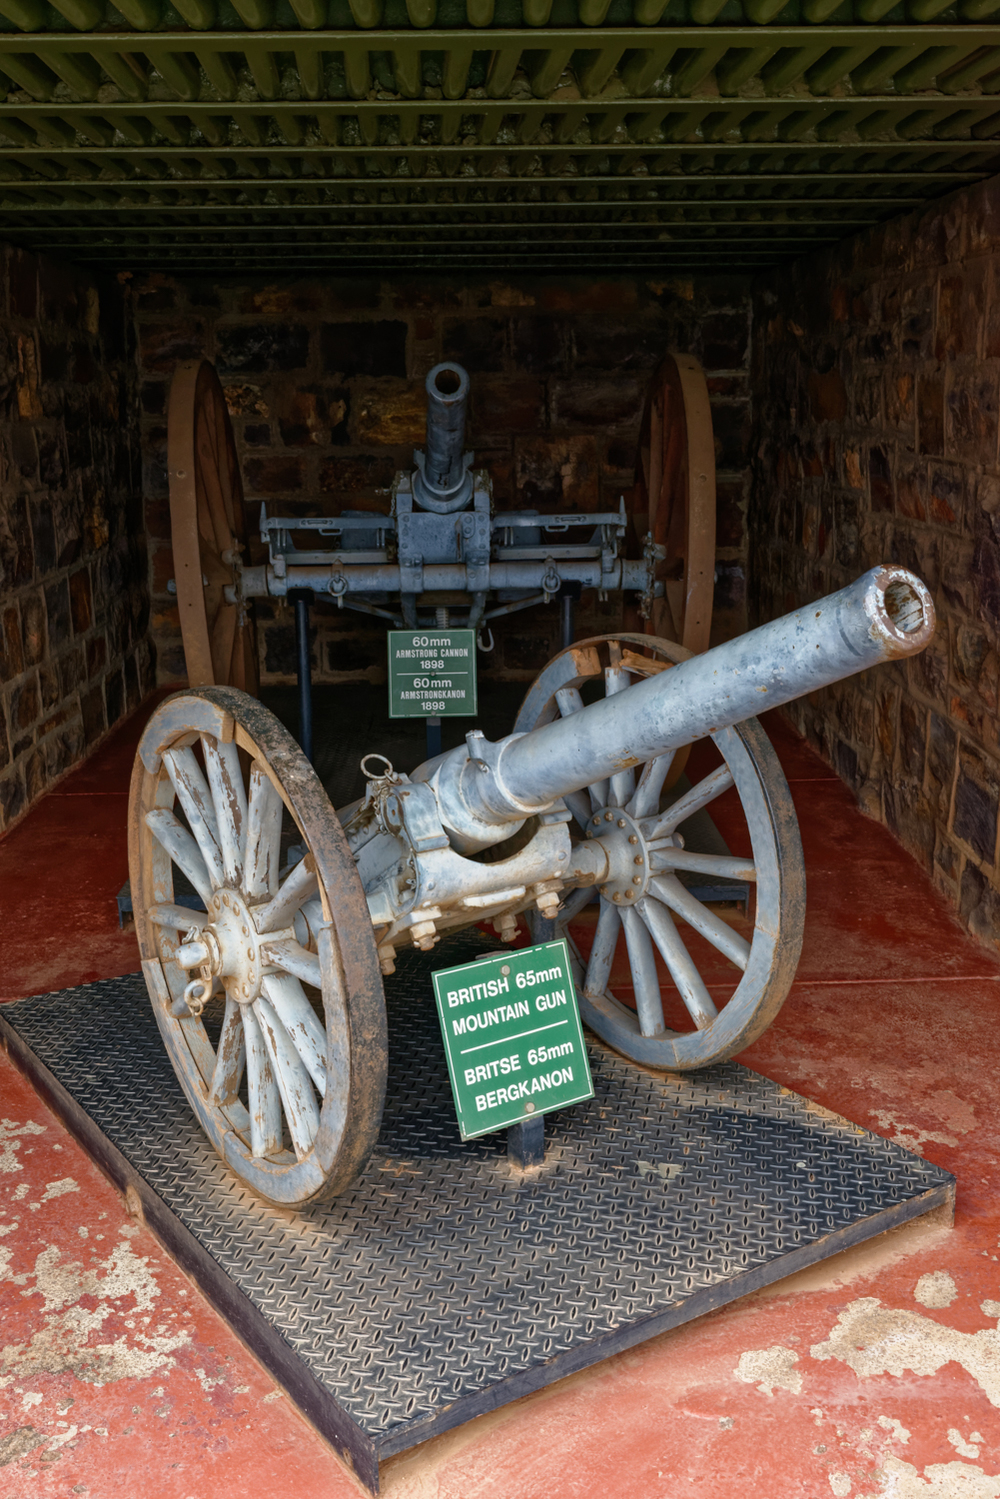 Pretoria Fort Klapperkop. British canons.